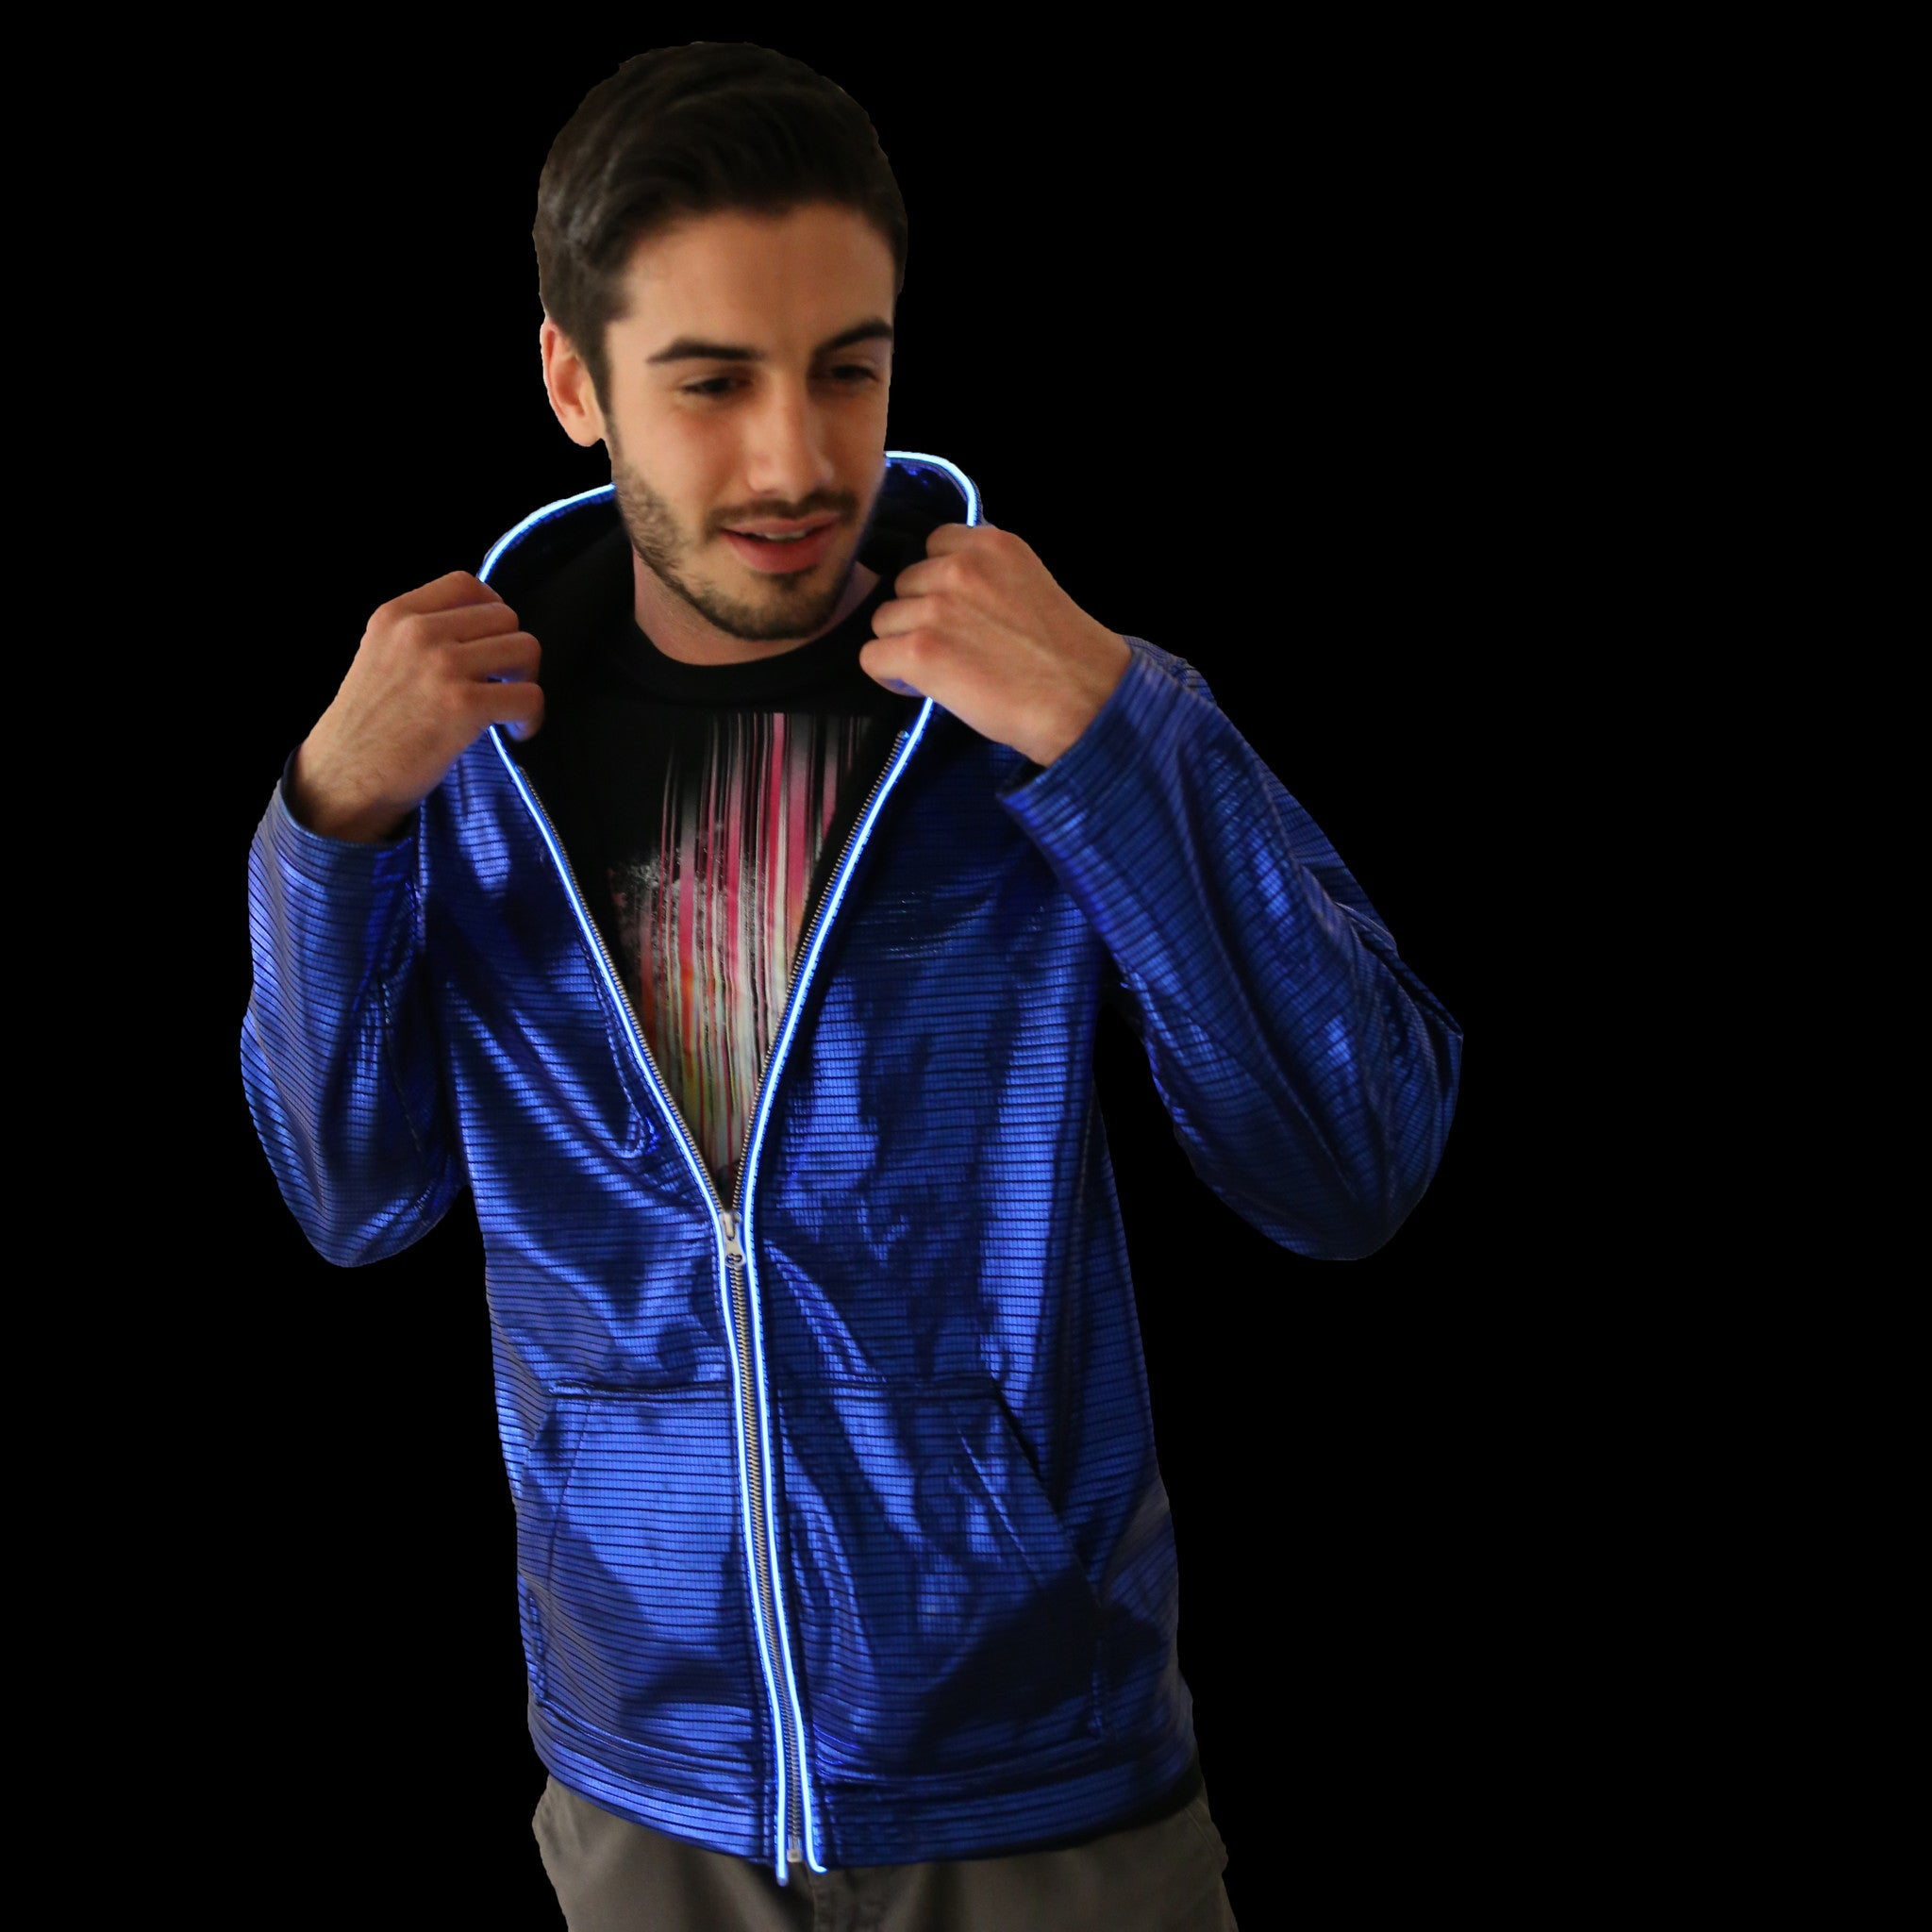 Light Up Electro Hoodie - Electric Styles | World's Number 1 Light Up Shoe Store - {product_type}} - Small / Blue - 2